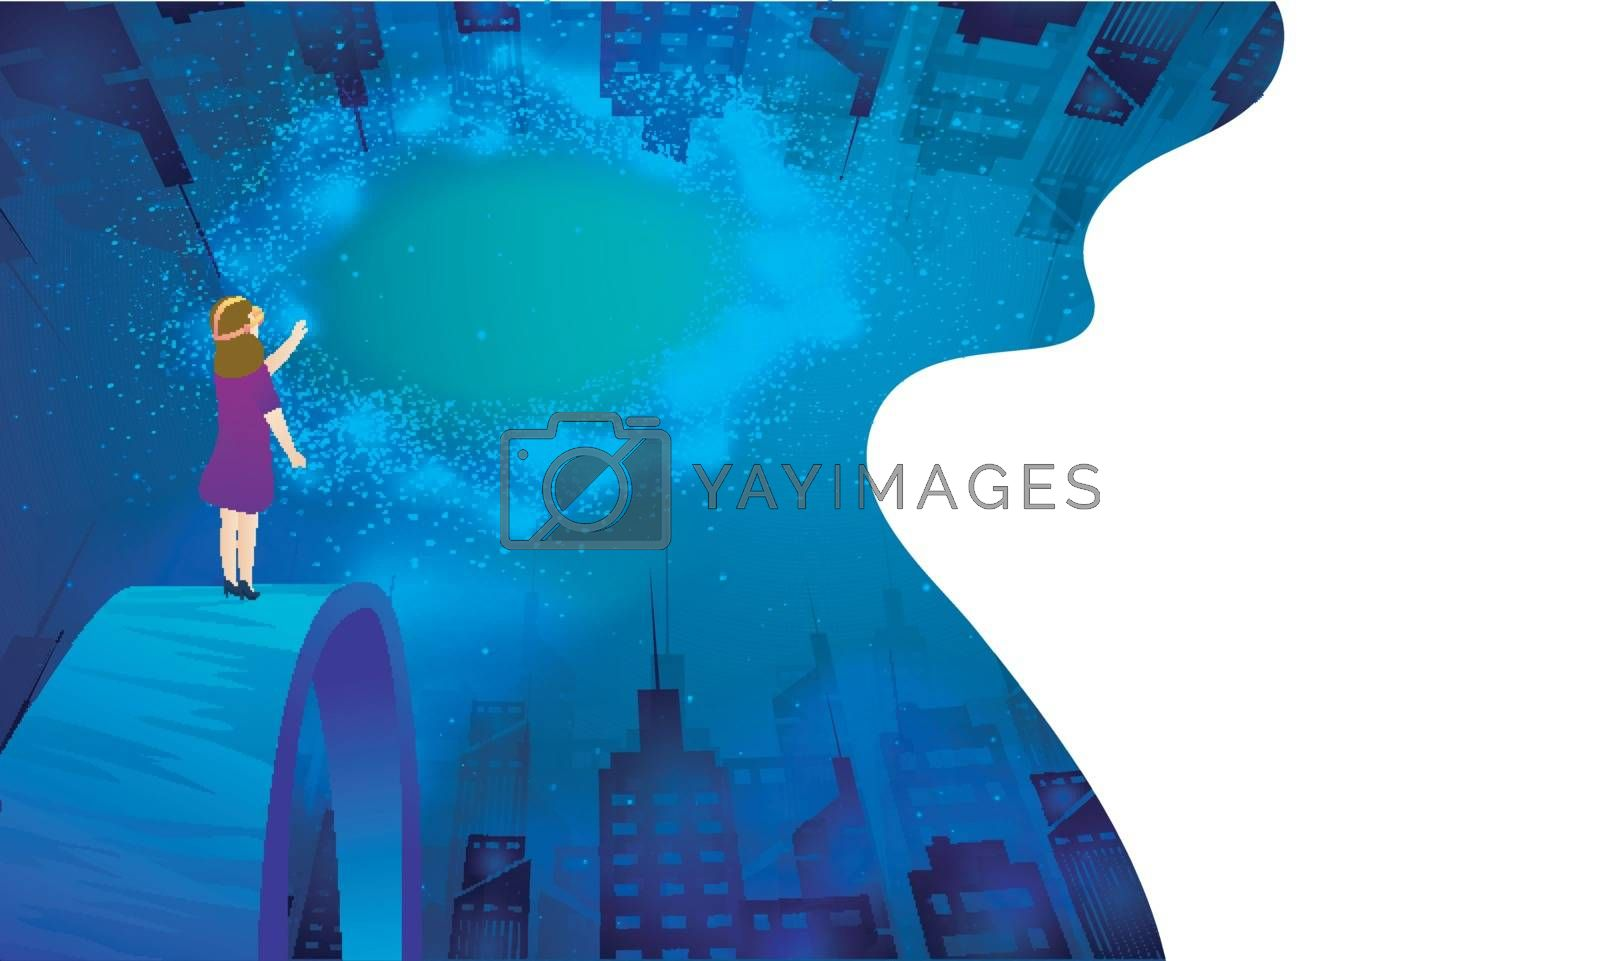 Futuristic concept based web template design, girl wearing VR glasses on urban landscape, interacting through imaginary universe.